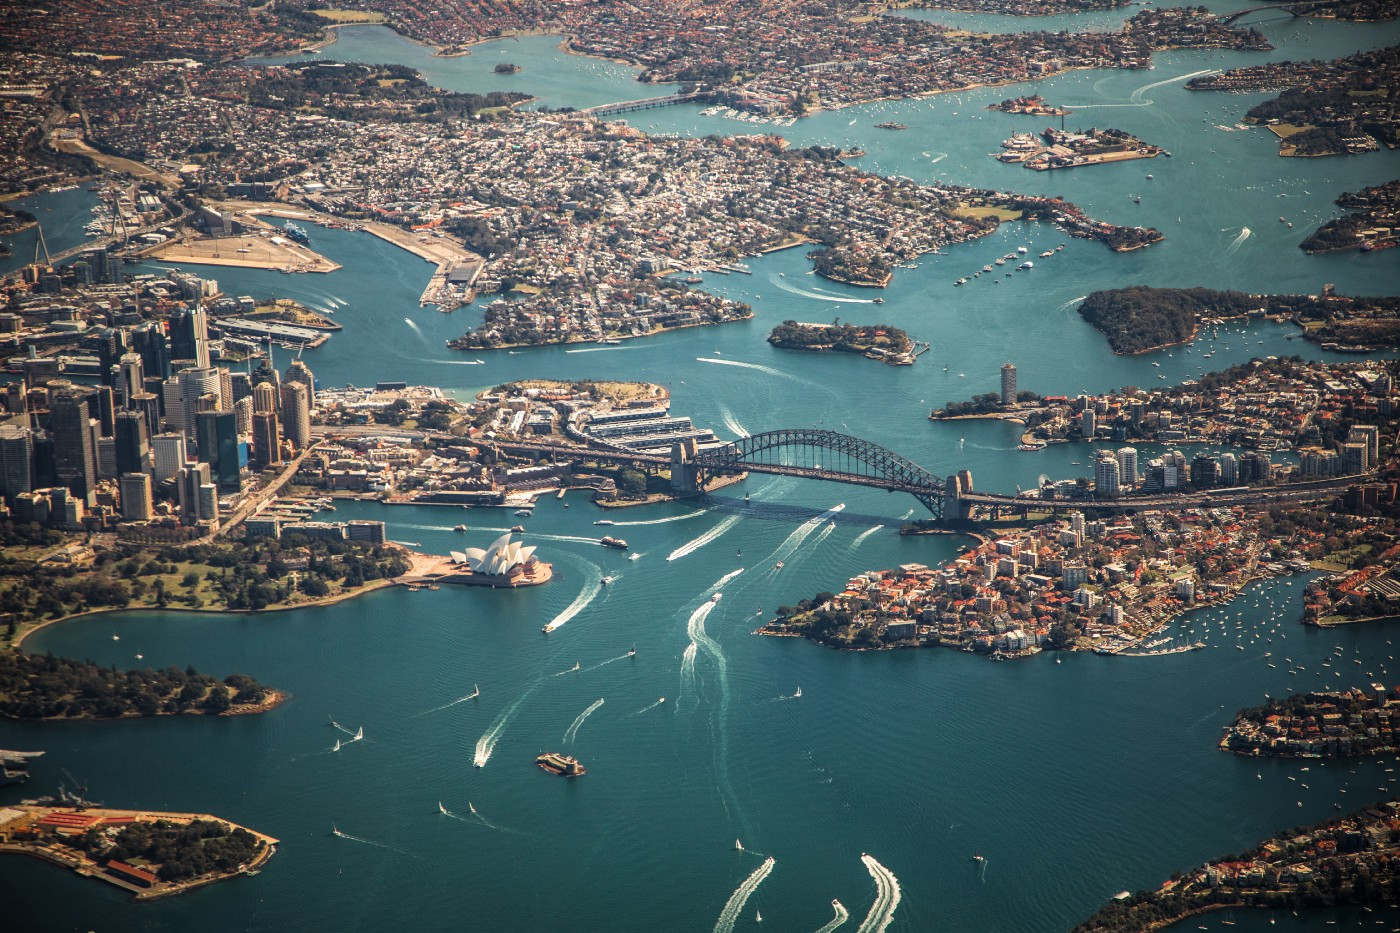 An aerial view of the city of Sydney Australia. In the photo you can see Darling Harbor, the Harbor Bridge, and the Sydney Opera House. There are many boats in the harbor leaving white ripples in the water.